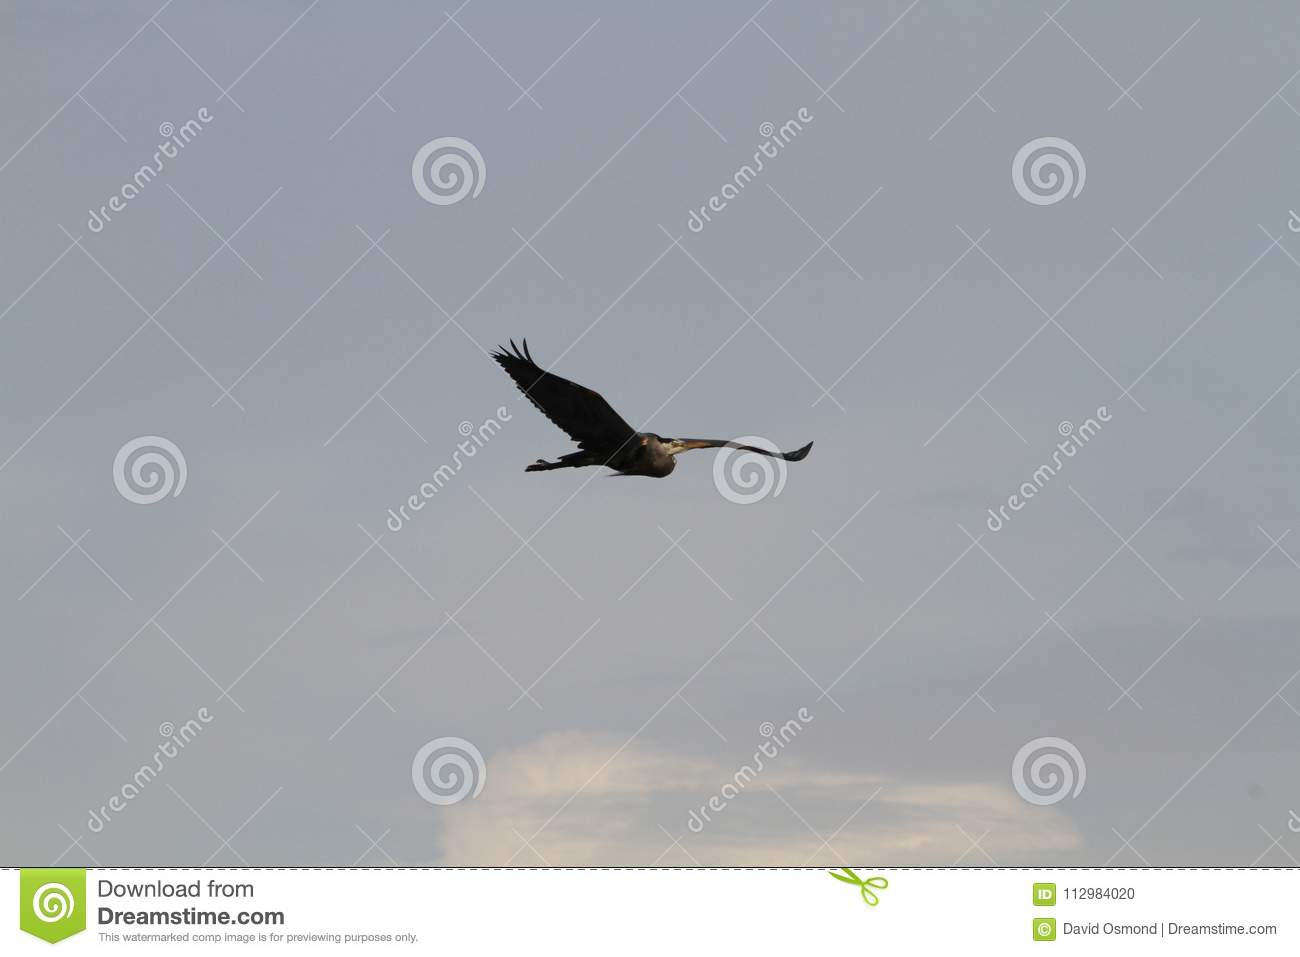 A heron flying by on a cloudy day